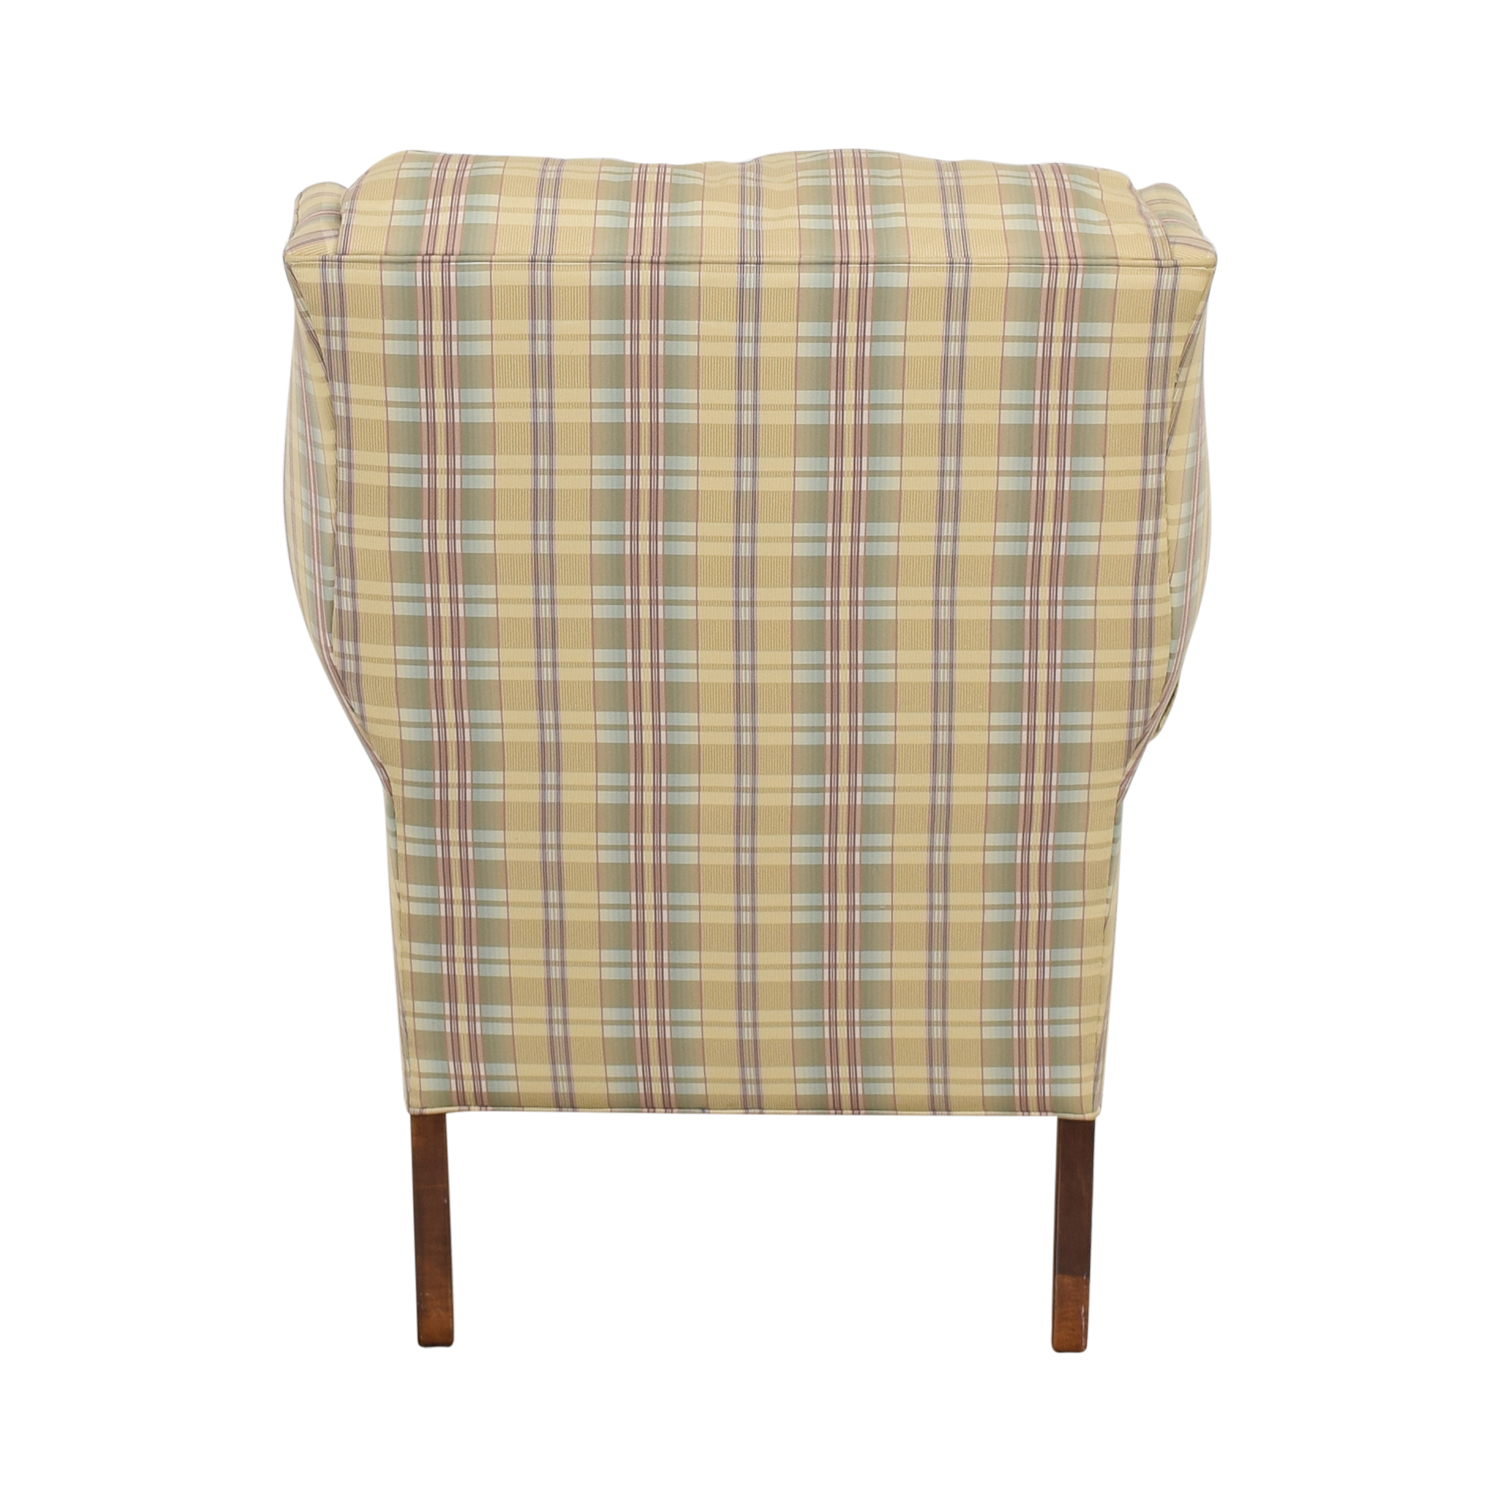 Excellent 57 Off Ethan Allen Ethan Allen Plaid Wingback Chair And Ottoman Chairs Inzonedesignstudio Interior Chair Design Inzonedesignstudiocom